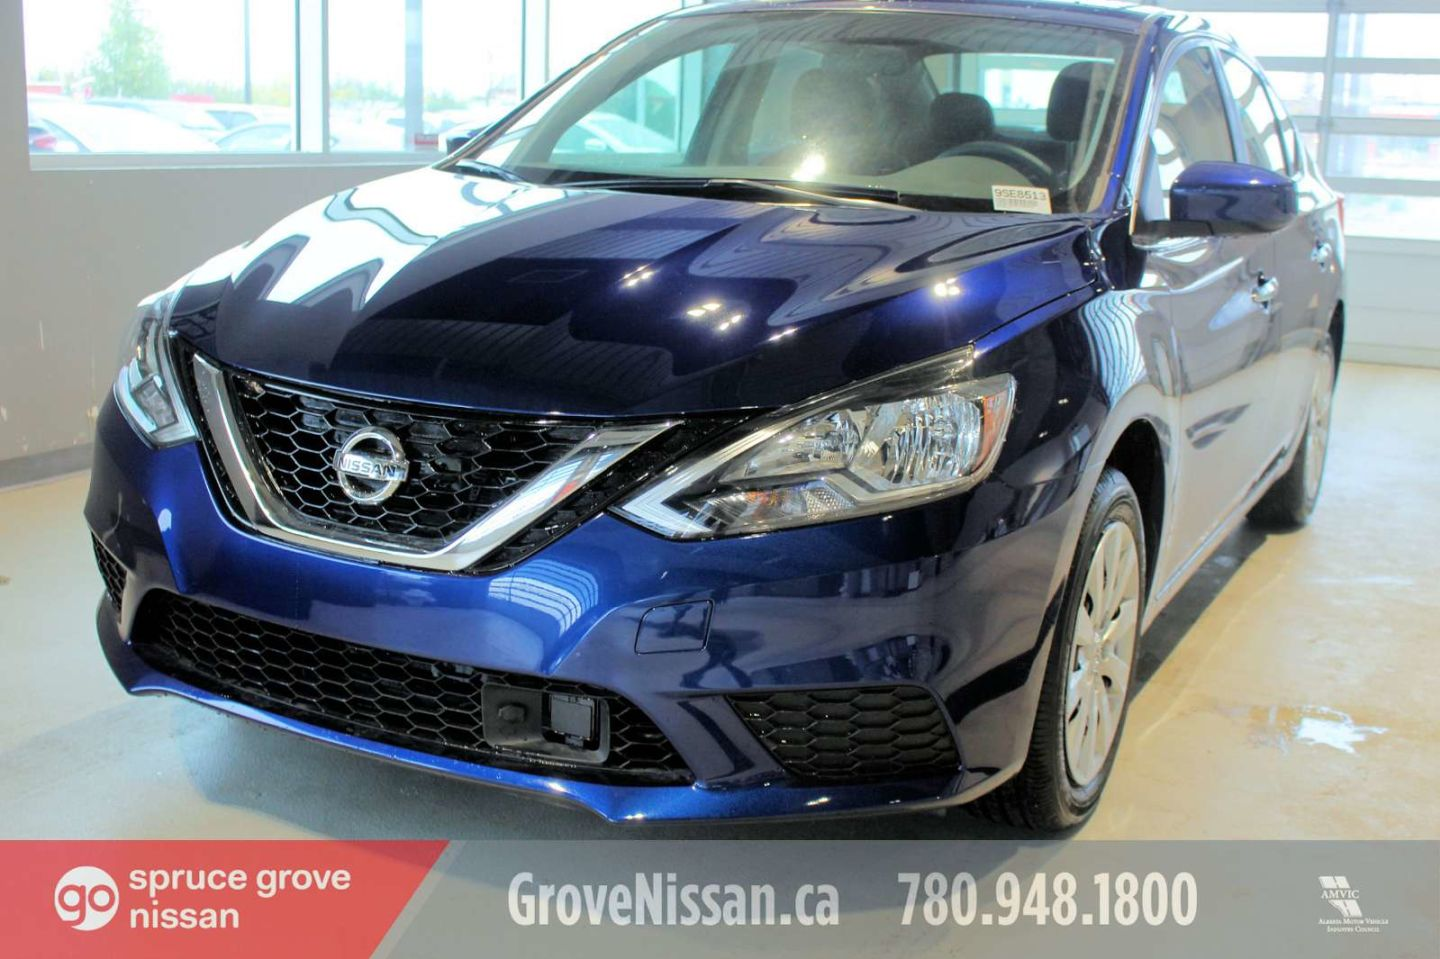 2019 Nissan Sentra SV for sale in Spruce Grove, Alberta